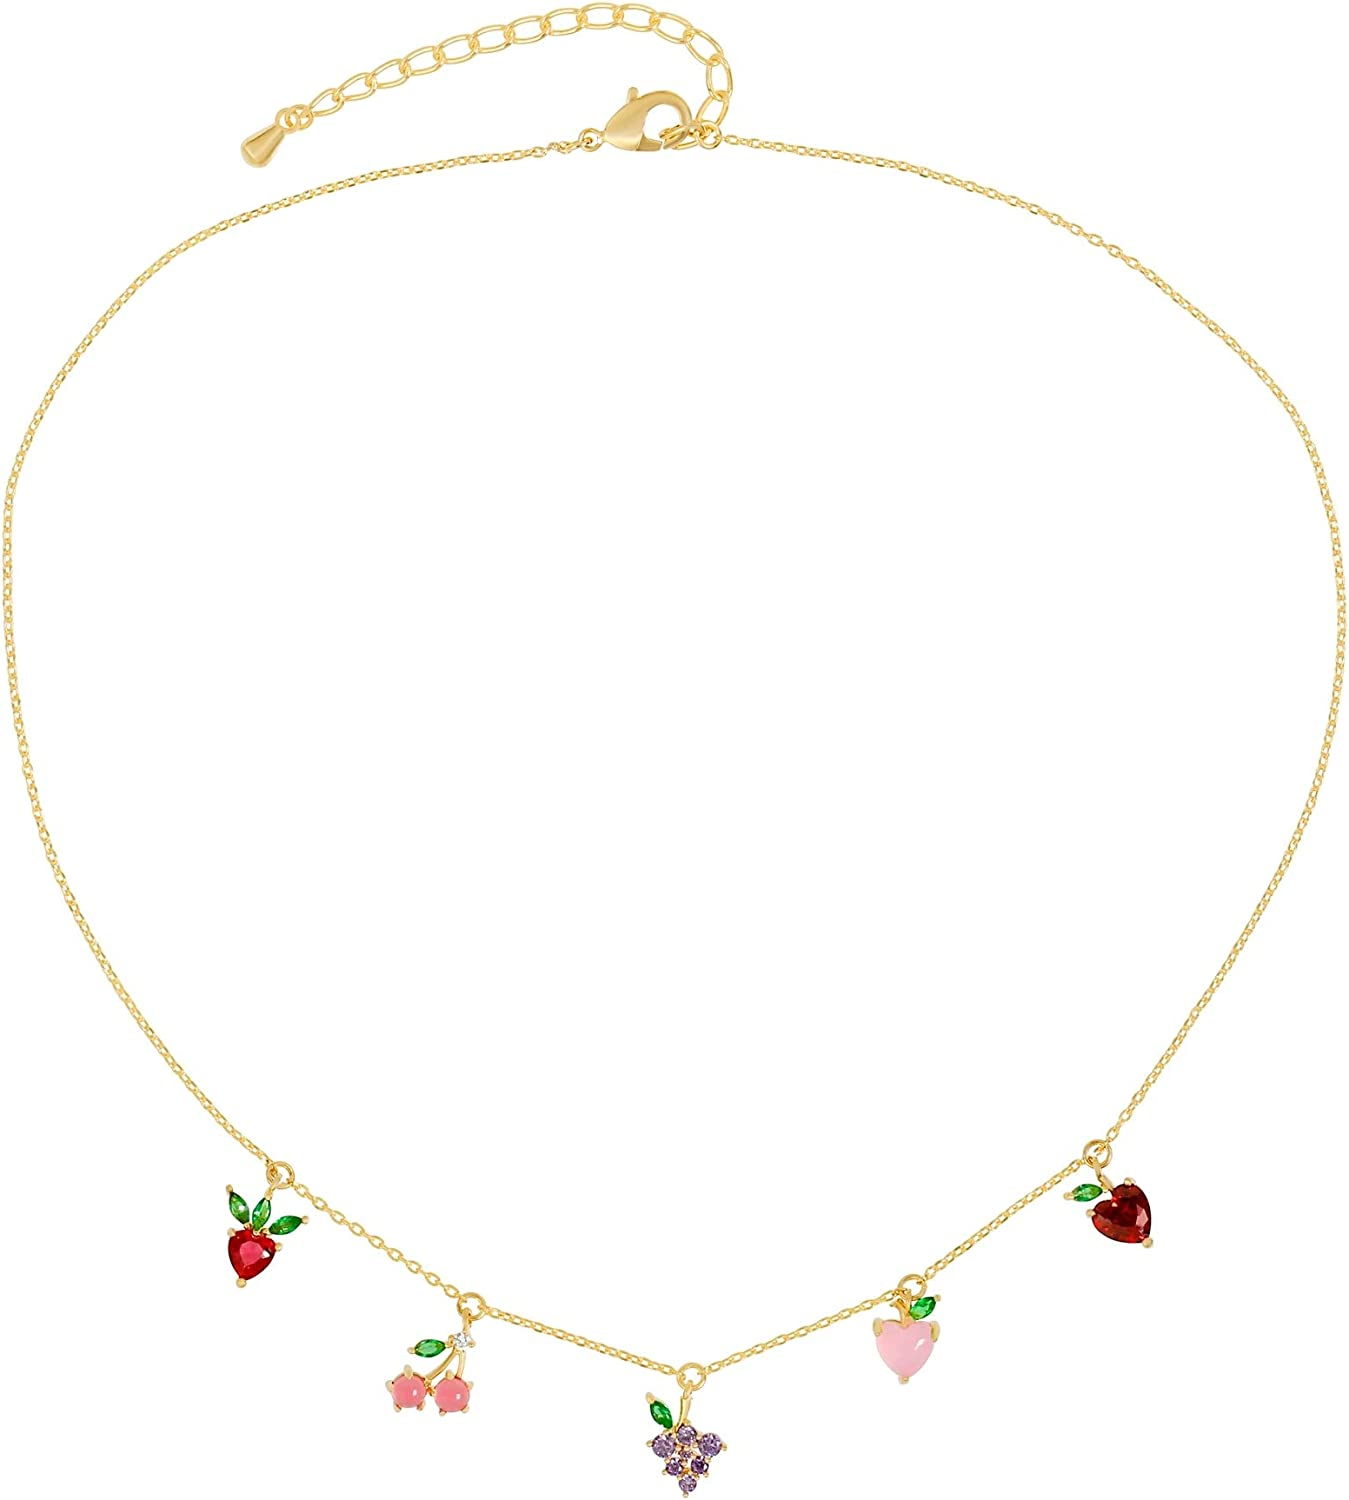 AoedeJ Now on sale 14K Gold Plated Fruit Basket Girls Women Choker New product type for Cute